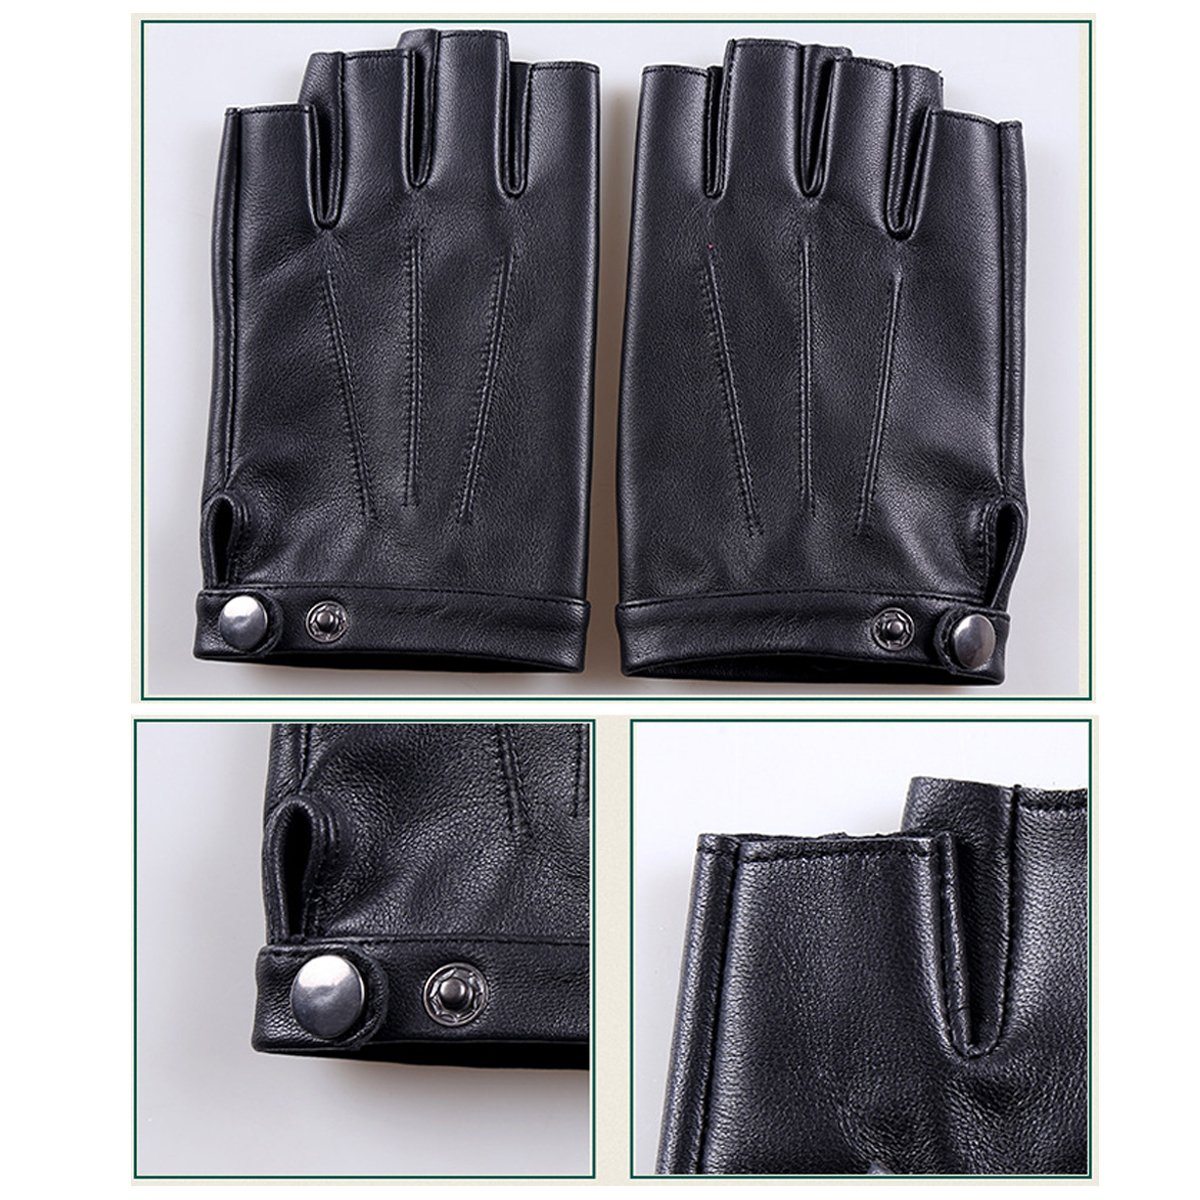 Fingerless Gloves PU Leather Gloves Touchscreen Texting Dress Driving Moto Glove for Men Women Teens (L) by gloveslove (Image #4)